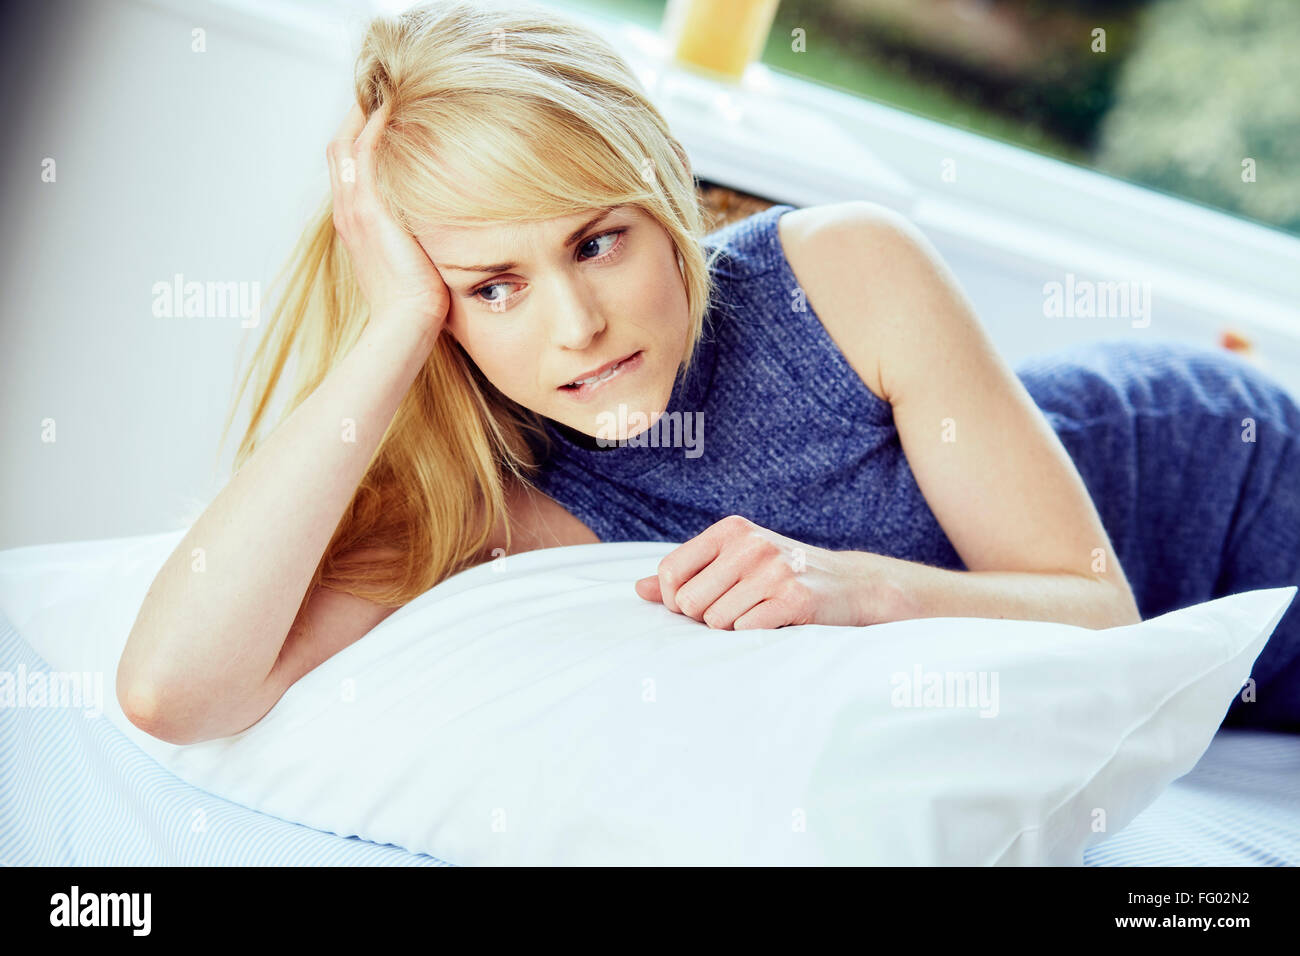 Stressed girl lying in bed - Stock Image